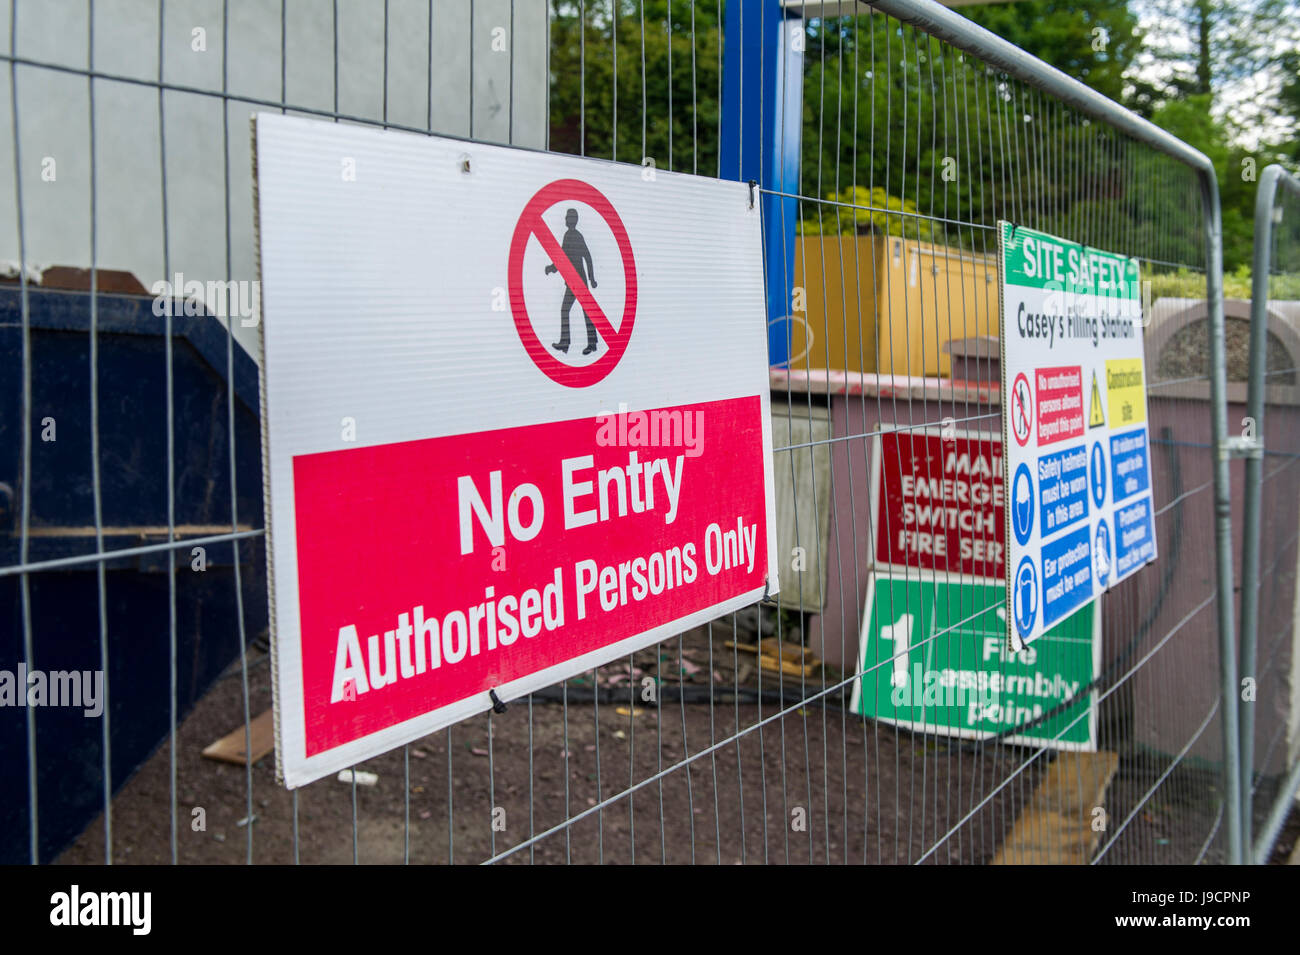 No Entry and warning signs on a metal fence on a building site. - Stock Image